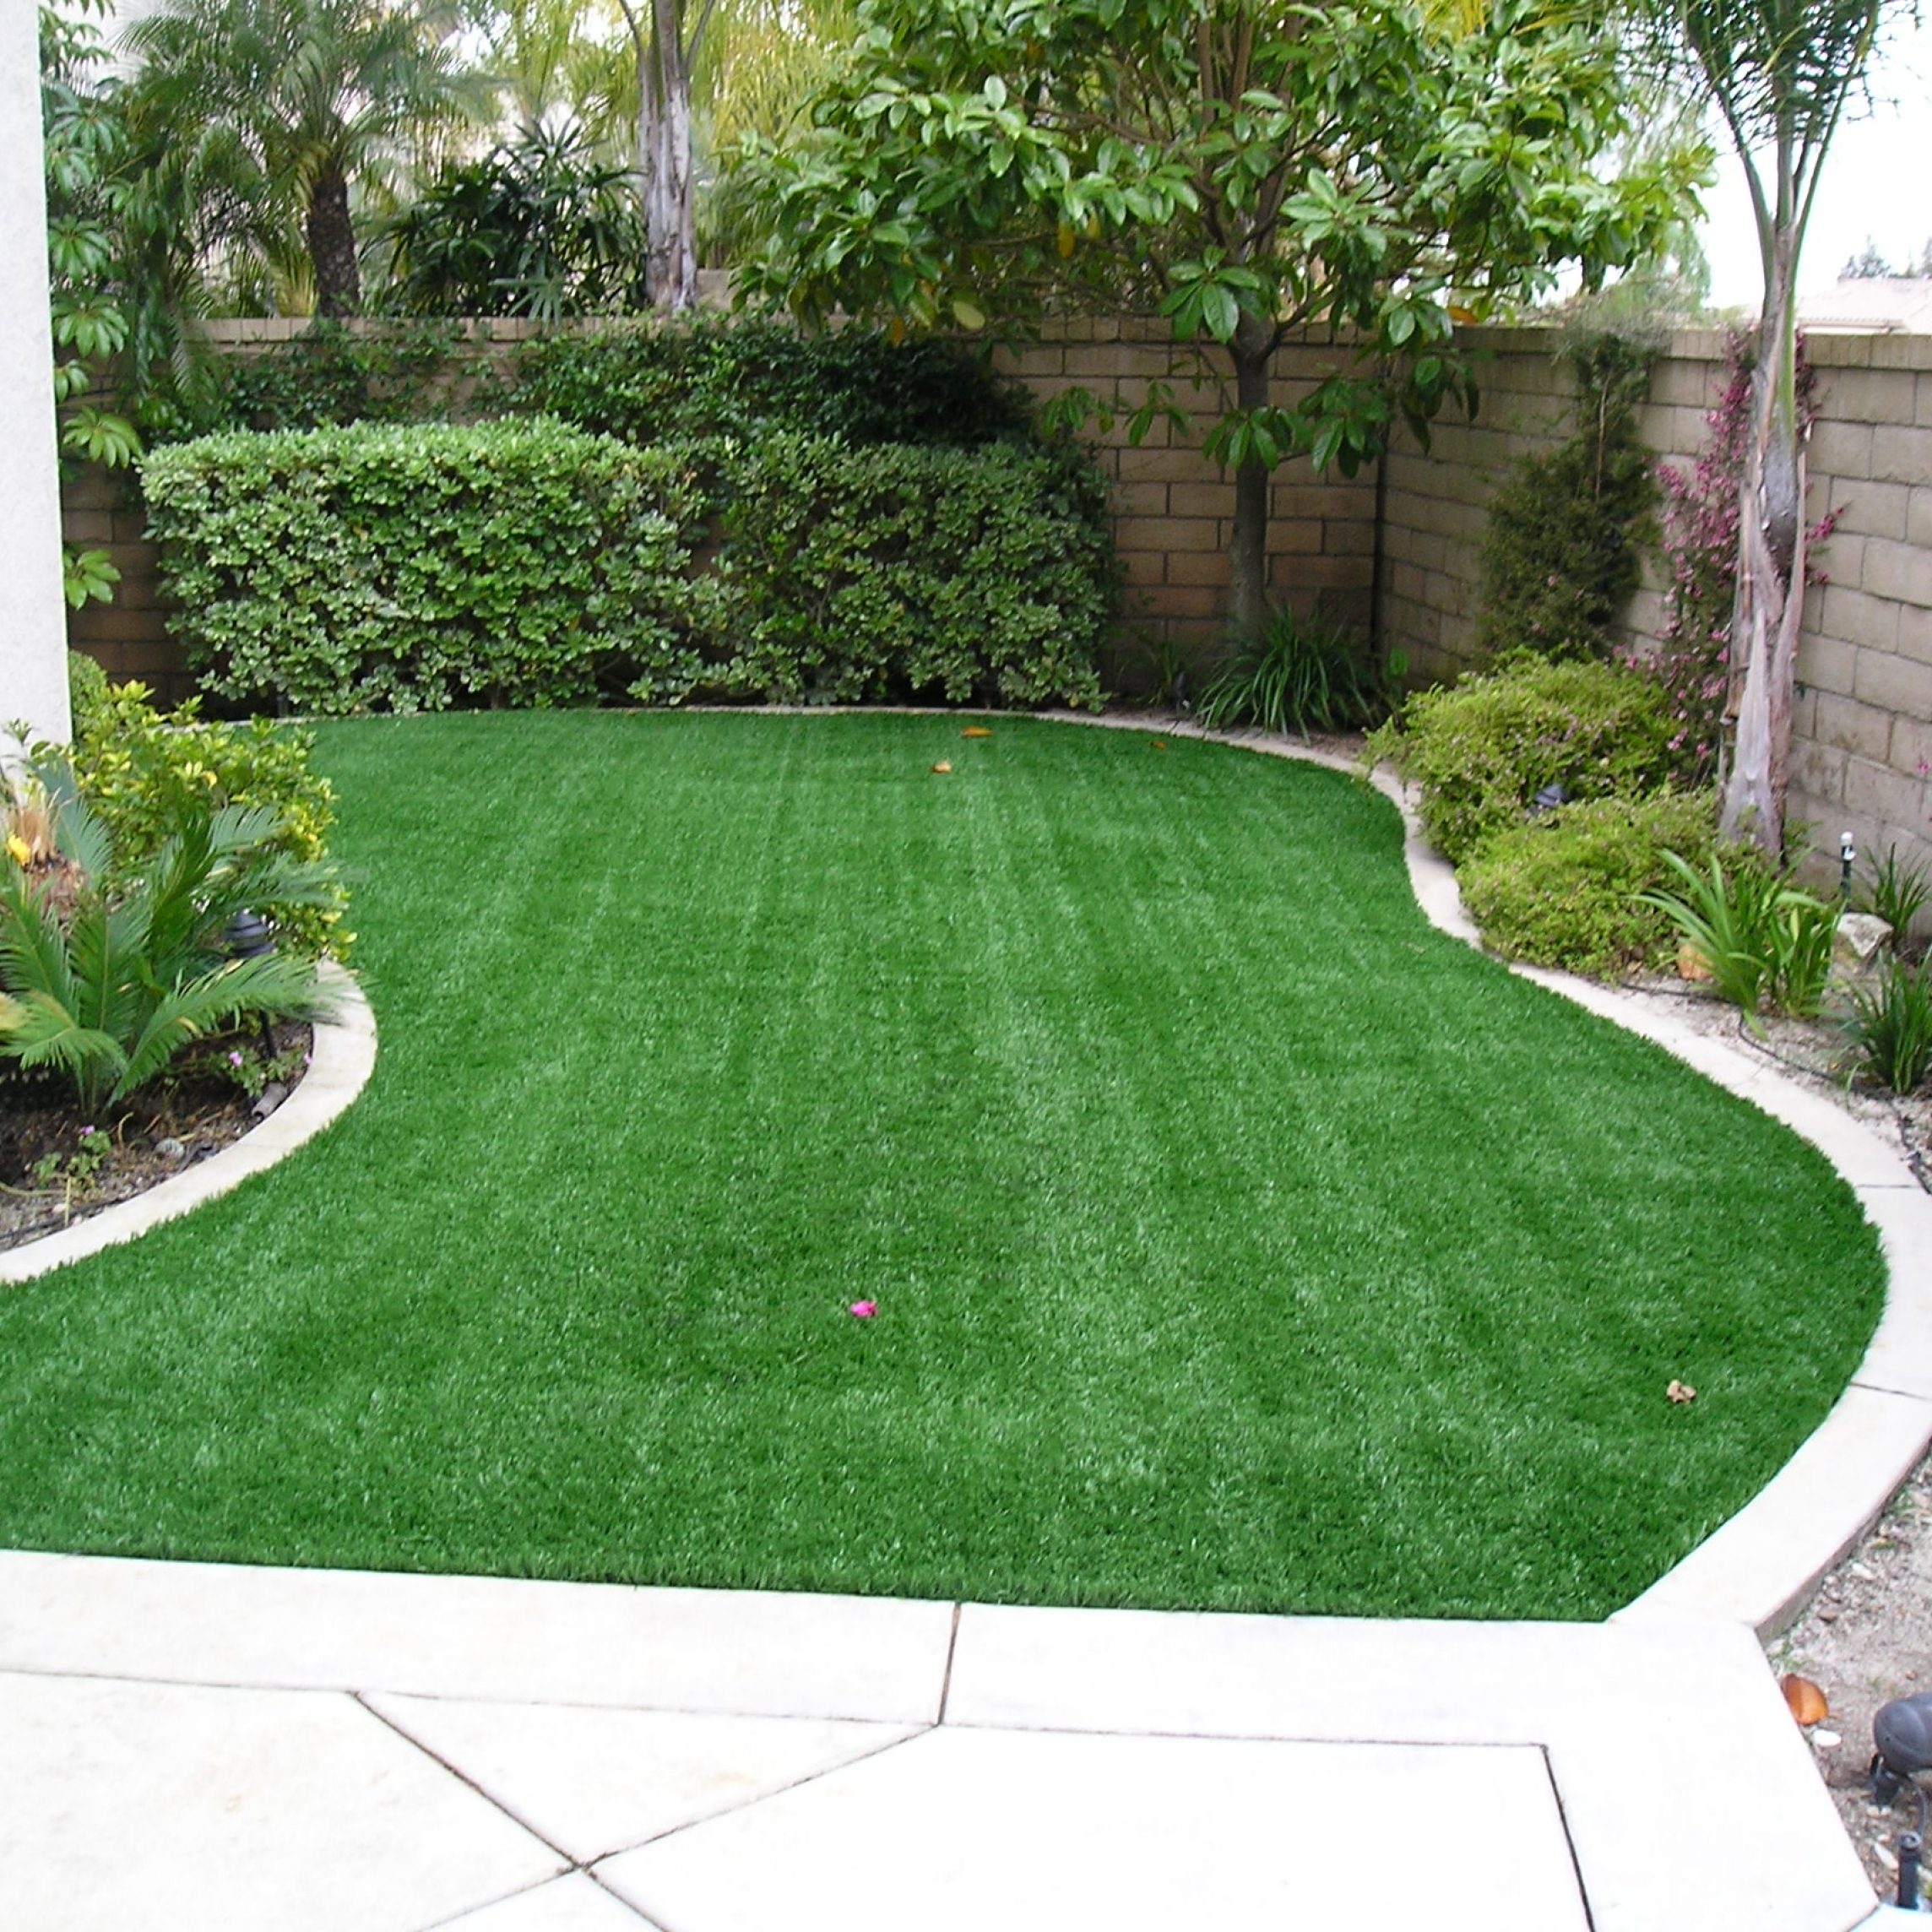 S Blade-90 artificial grass for homes,artificial turf for homes,best artificial grass for home,astro turf for home,artificial lawns for homes,artificial turf,synthetic turf,artificial turf installation,how to install artificial turf,used artificial turf,fake grass for yard,backyard turf,turf backyard,turf yard,fake grass for backyard